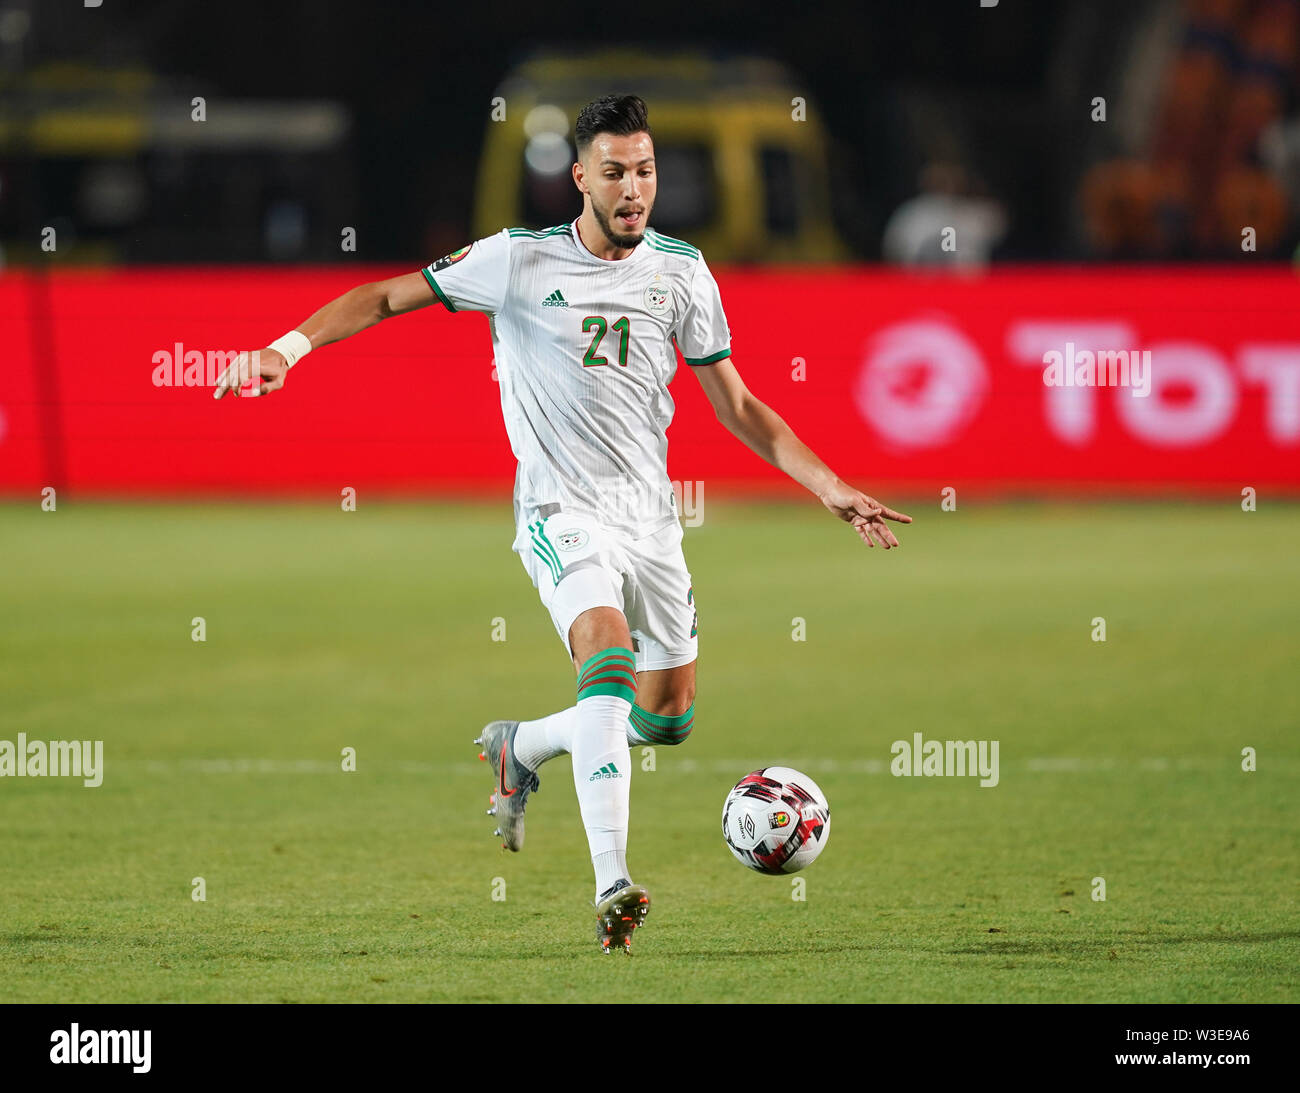 Cairo, Algeria, Egypt. 14th July, 2019. FRANCE OUT July 14, 2019: Amir Selmane Rami Bensebaini of Algeria during the 2019 African Cup of Nations match between Algeria and Nigeria at the Cairo International Stadium in Cairo, Egypt. Ulrik Pedersen/CSM/Alamy Live News - Stock Image